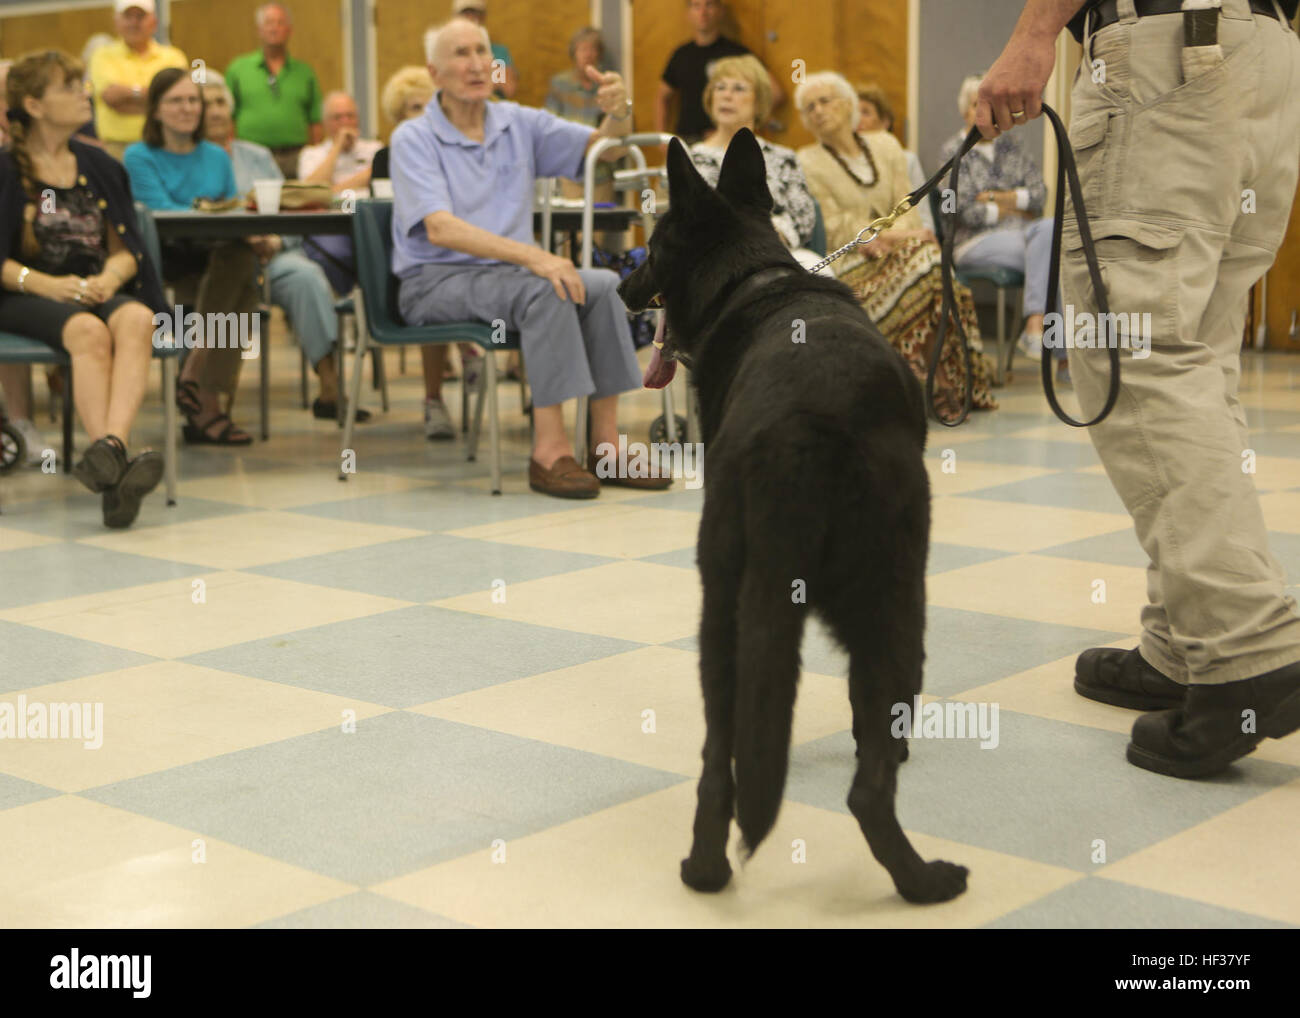 A member of the Provost Marshall's office K-9 unit answers questions from the crowd while his dog obediently waits - Stock Image